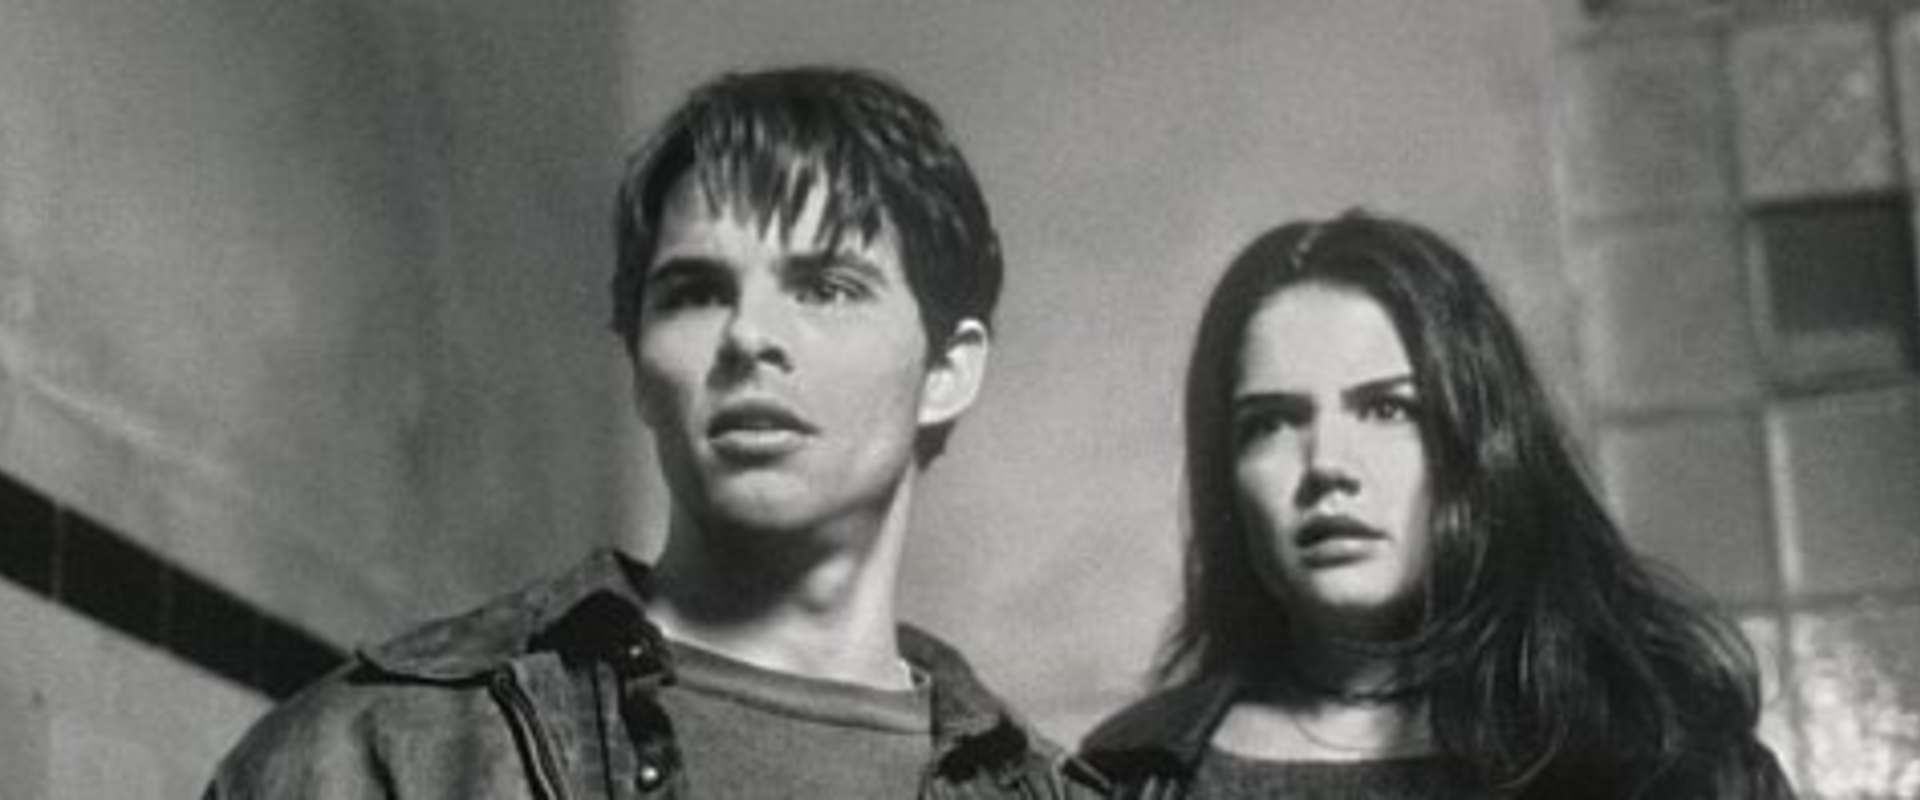 Disturbing Behavior background 2